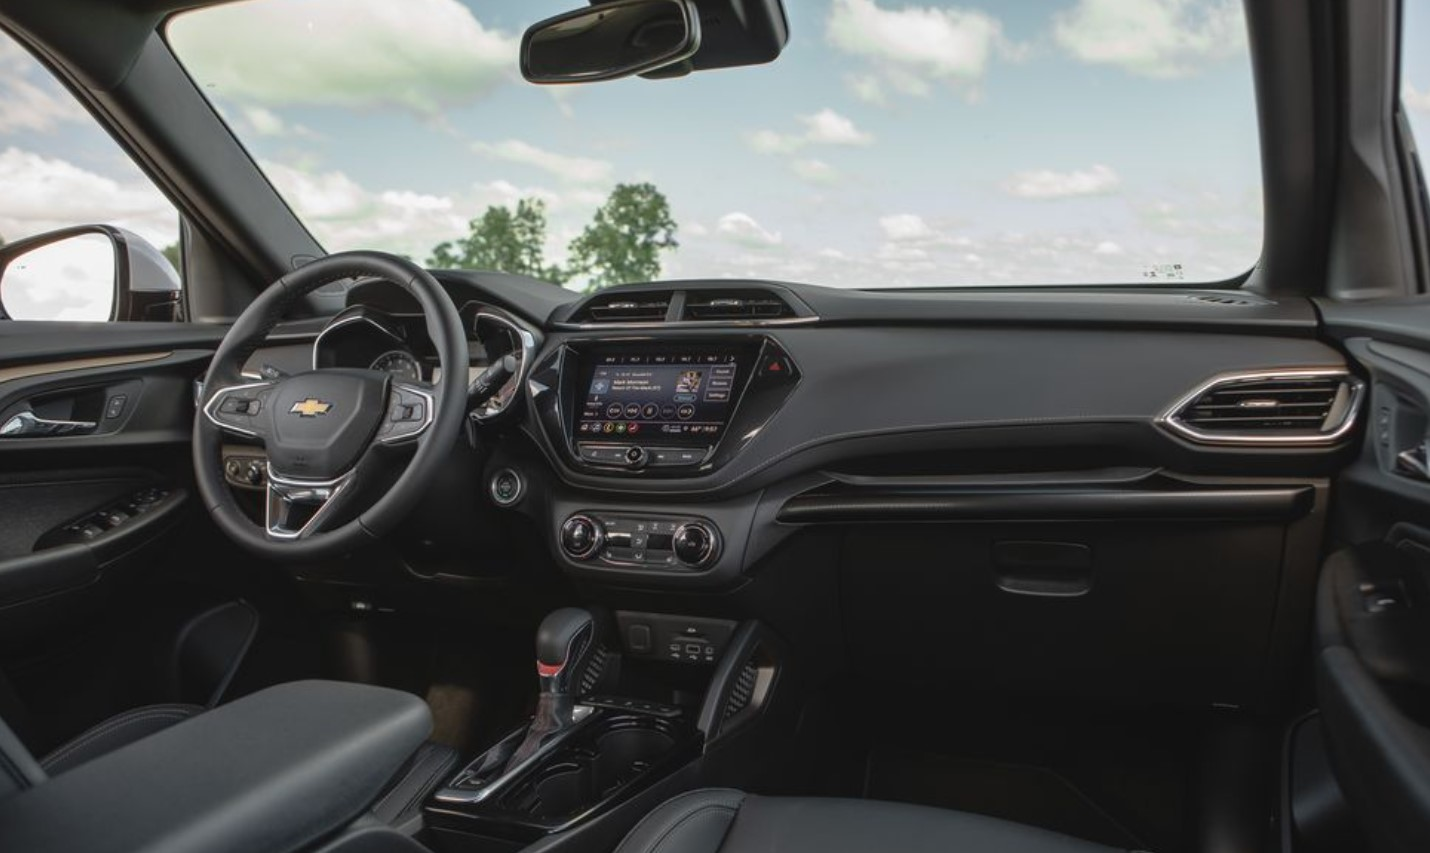 2021 Chevrolet Trailblazer RS Interior